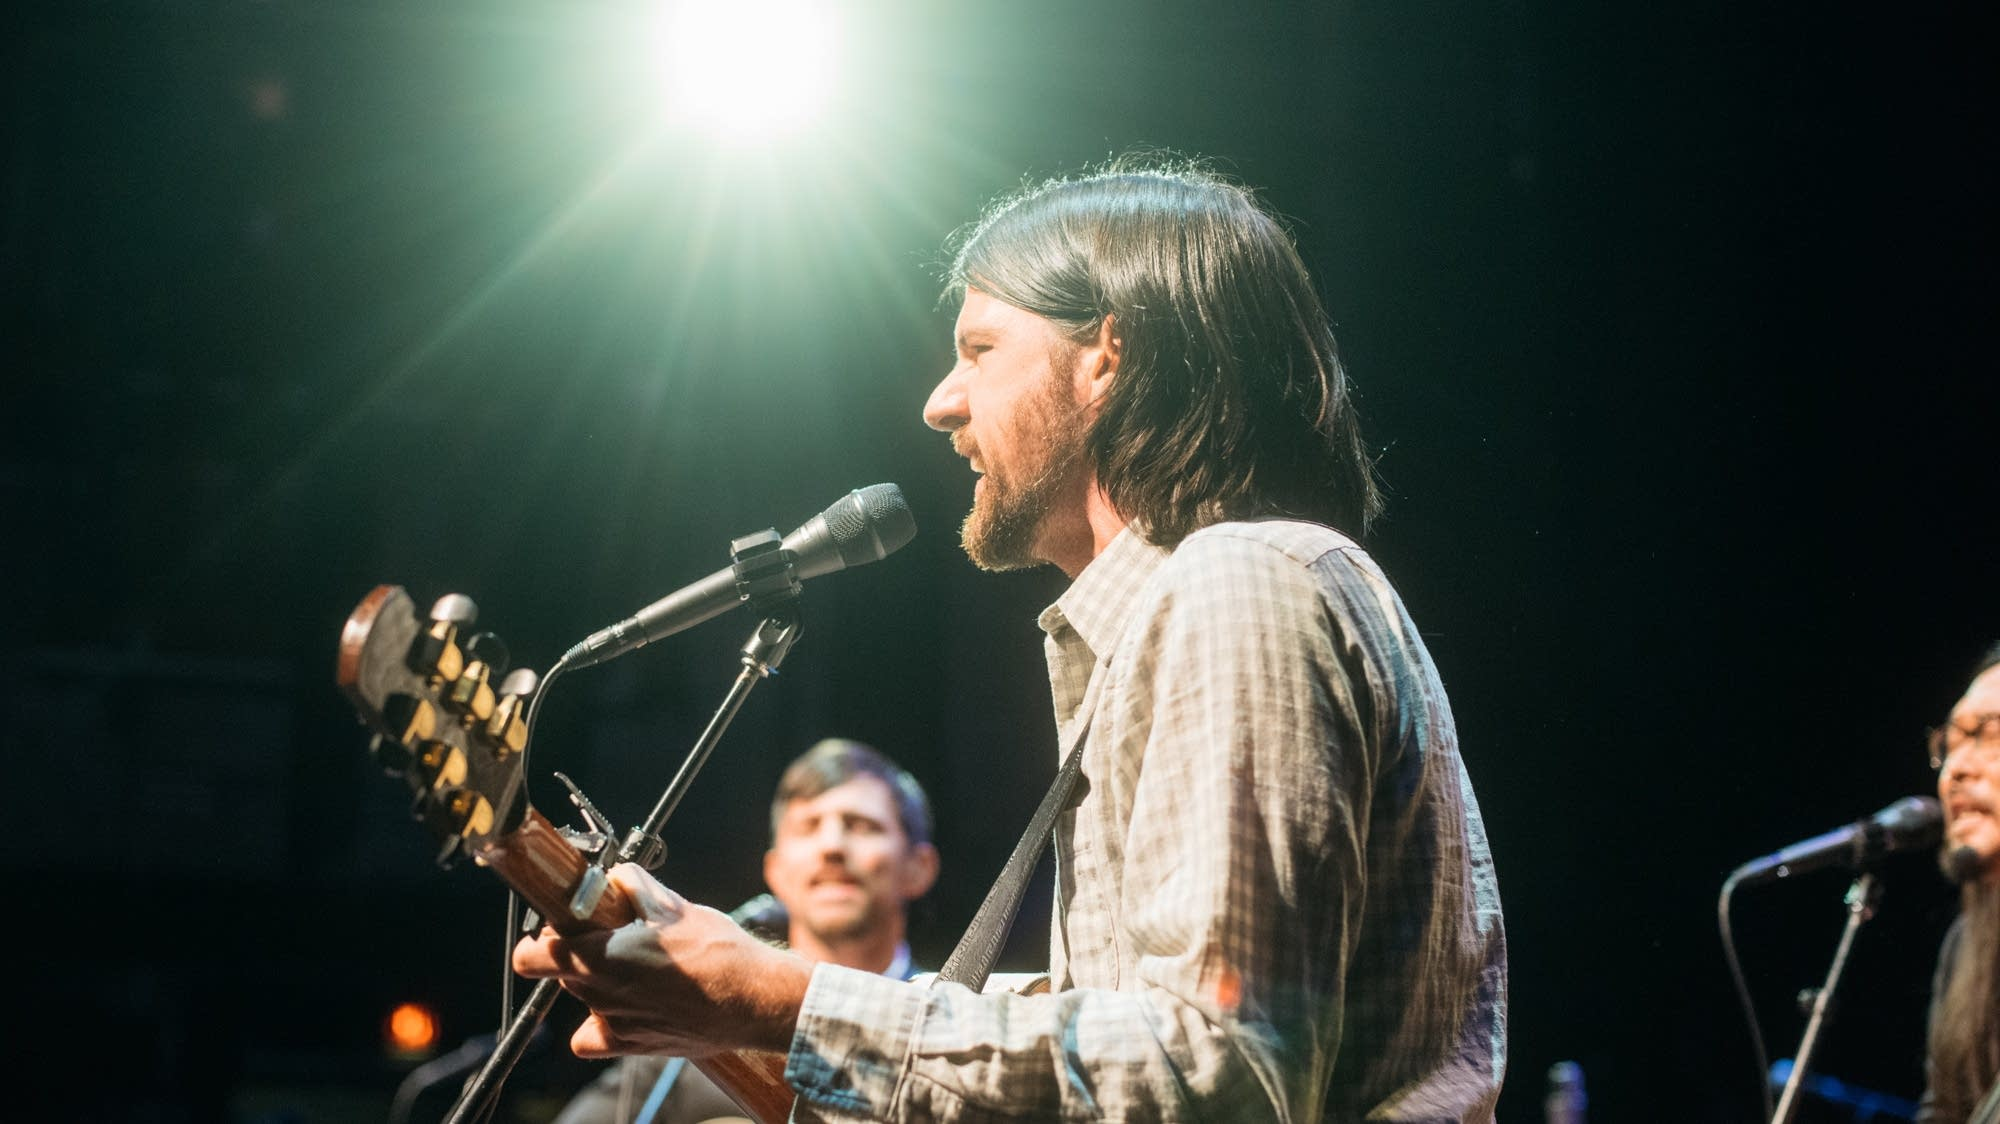 Avett Brothers Jesca Hoop and news of more shows illuminate this